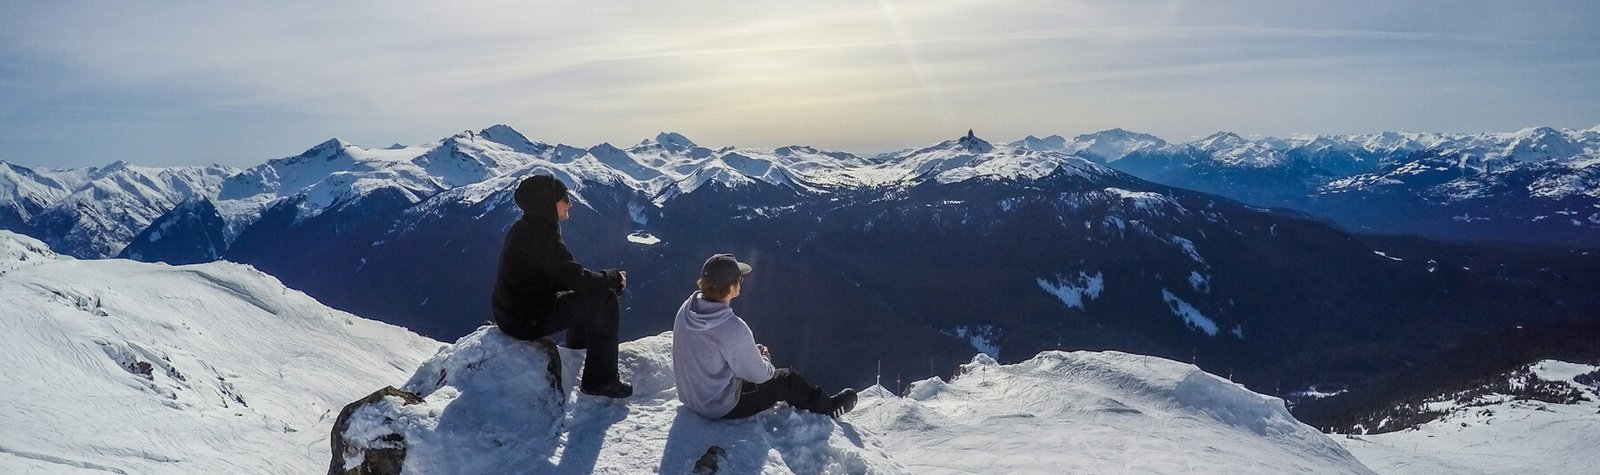 Family Ski Holiday Activities For Teenagers